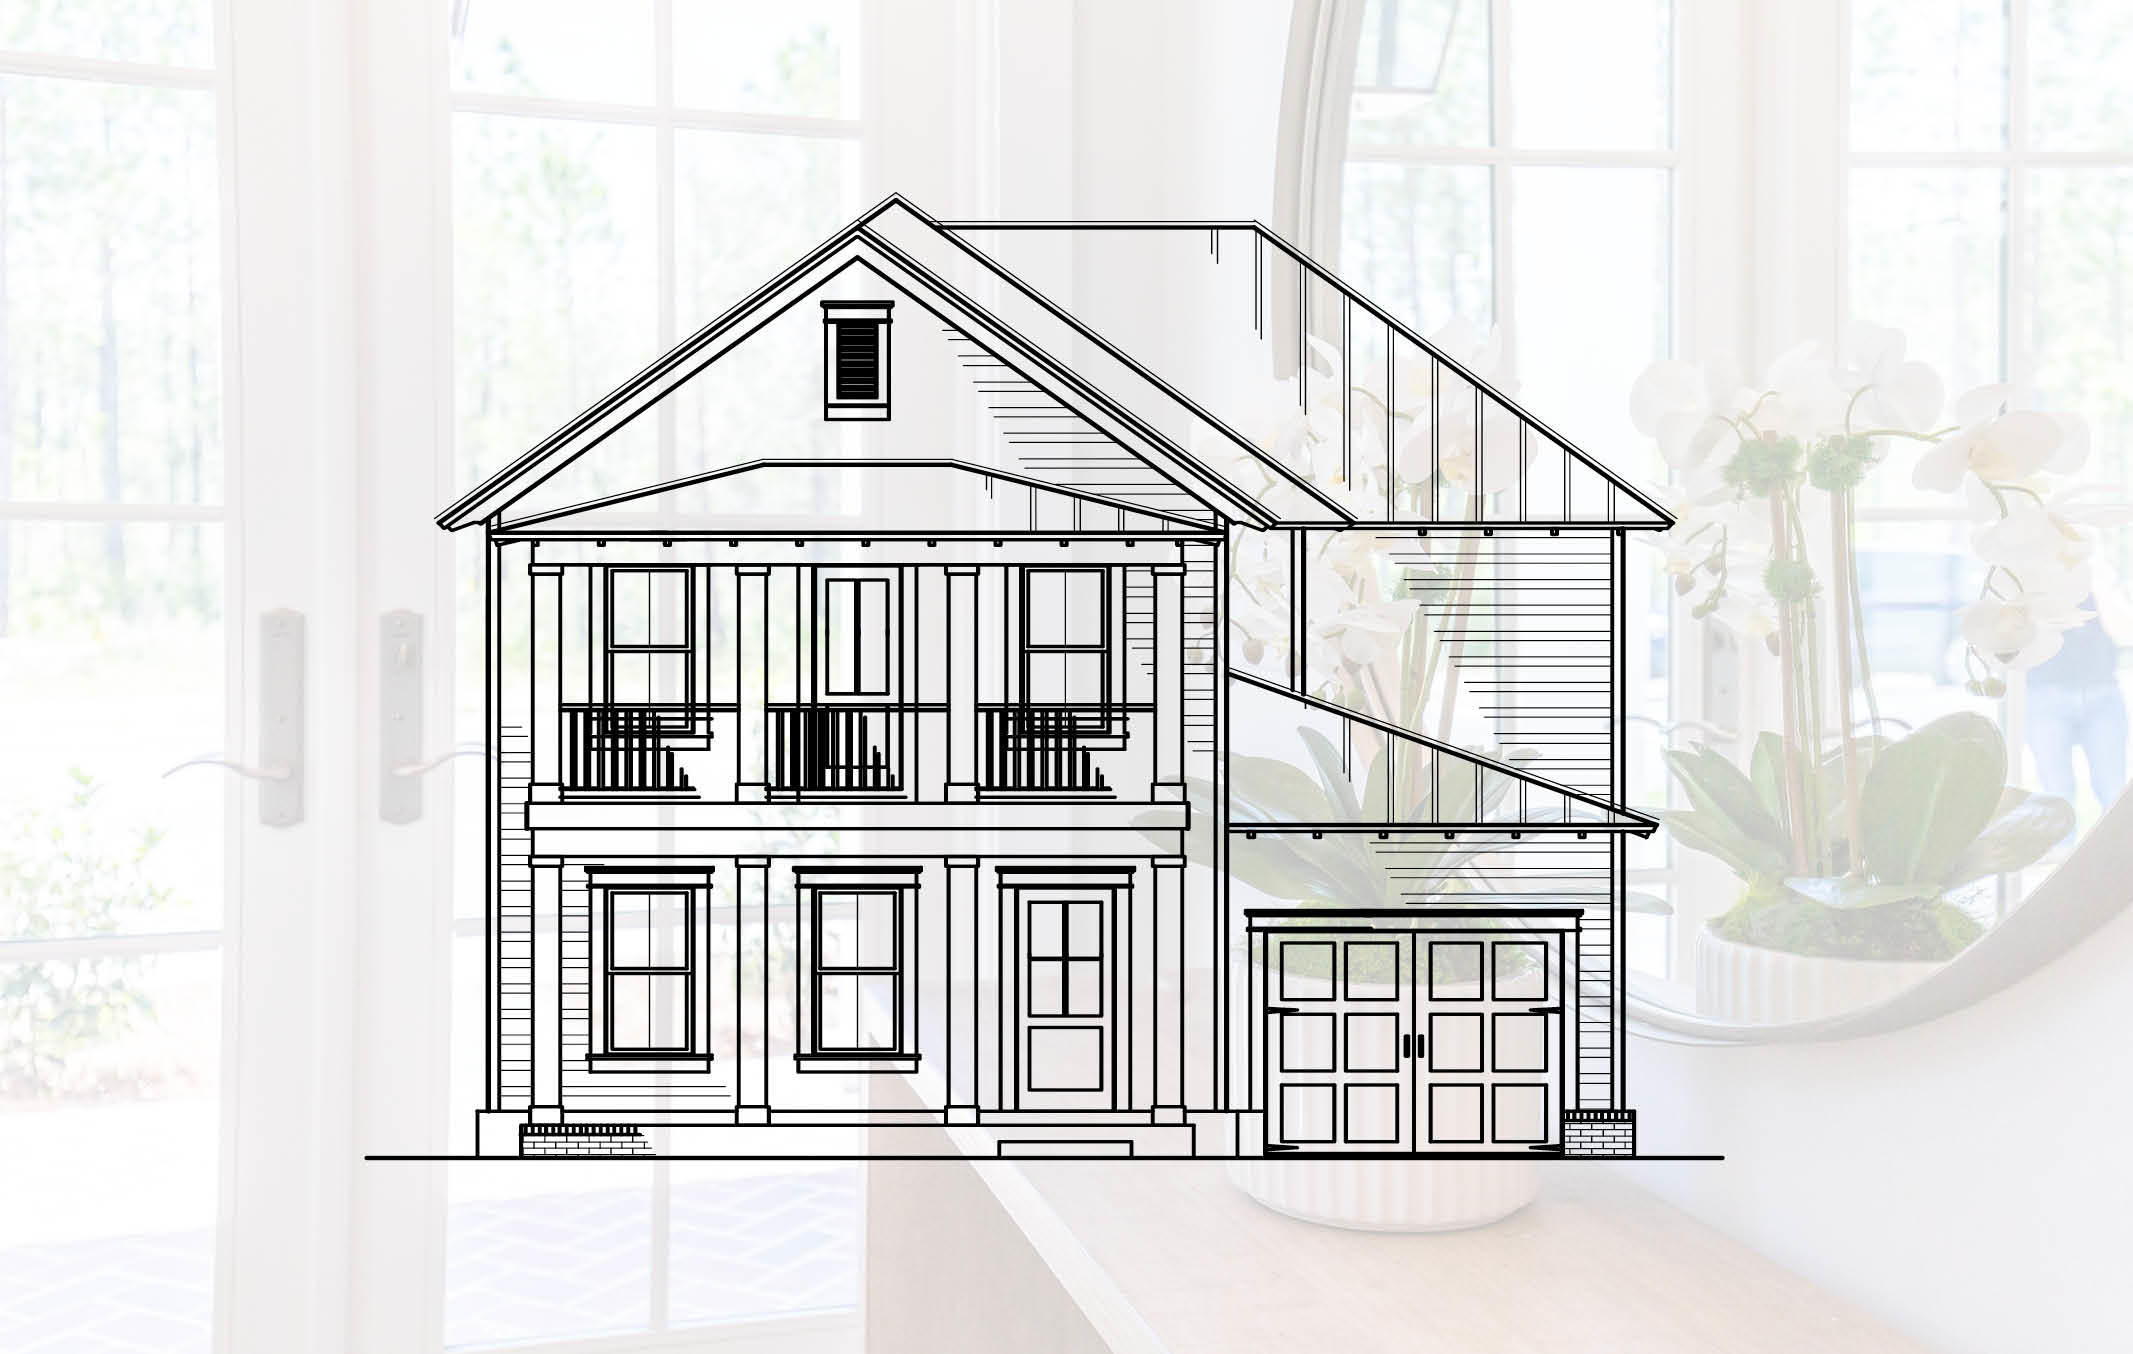 This custom Live Oak plan at Cottage Grove features 4 bedrooms, 4.5  baths, media room, attached 1-car garage and PRIVATE POOL! This home offers buyers the unique opportunity and  flexibility of selecting colors, flooring, cabinets and countertops! This is one of 4 premium homesites surrounded by nature preserve for added privacy. The spacious first floor has 10' ceilings with an open-concept plan including a kitchen with large island, built-in wine cooler, spacious living room and a first floor master suite!  Interior features include KitchenAid stainless steel appliances with 36' cooktop and vent hood, your choice of quartz or granite countertops, custom cabinetry, crown molding throughout, and engineered hardwood flooring with tile in bathroom and laundry. Exterior features include a brick paver driveway, metal roof, irrigation system, French style gas lantern, and brick & fiber cement siding.  The Cottage Grove neighborhood includes a community pool with pool house and is just steps away from the Ed Walline beach access along with shopping, dining, and entertainment at the Gulf Place Town Center. There will be a $325 irrigation tap fee for the new community irrigation system - HOA includes homeowner's lawn maintenance and irrigation!